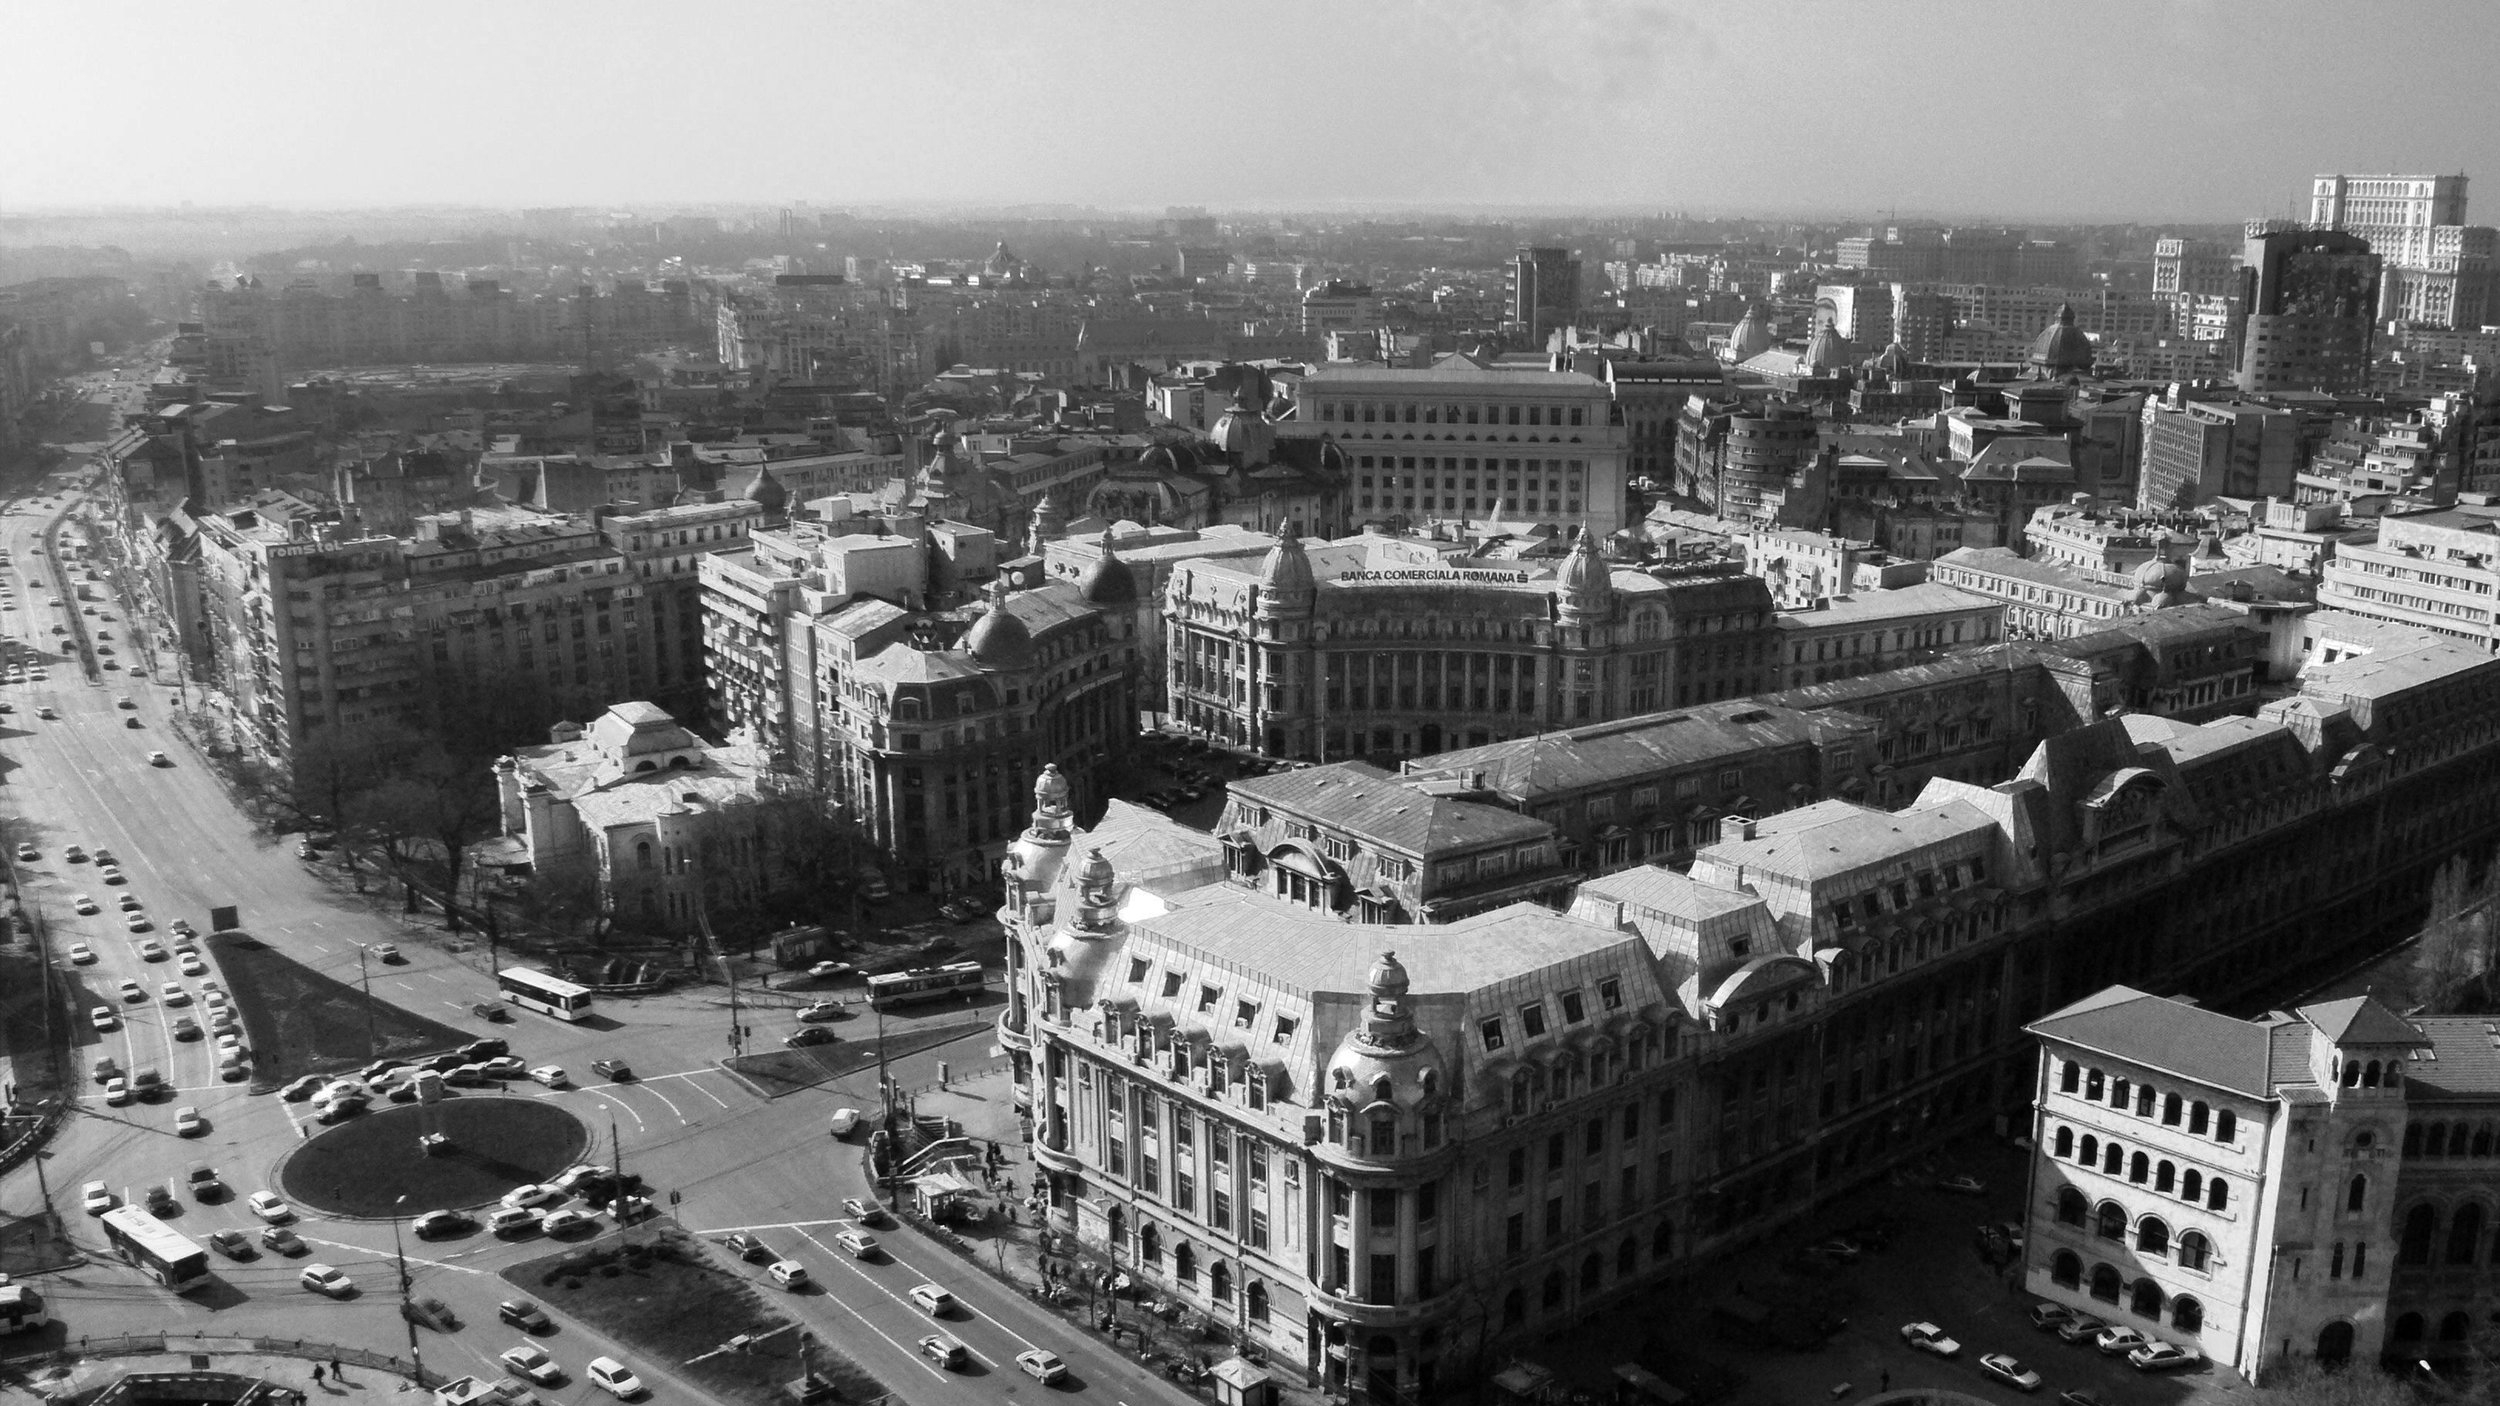 180412_bucharest_skyline.jpg